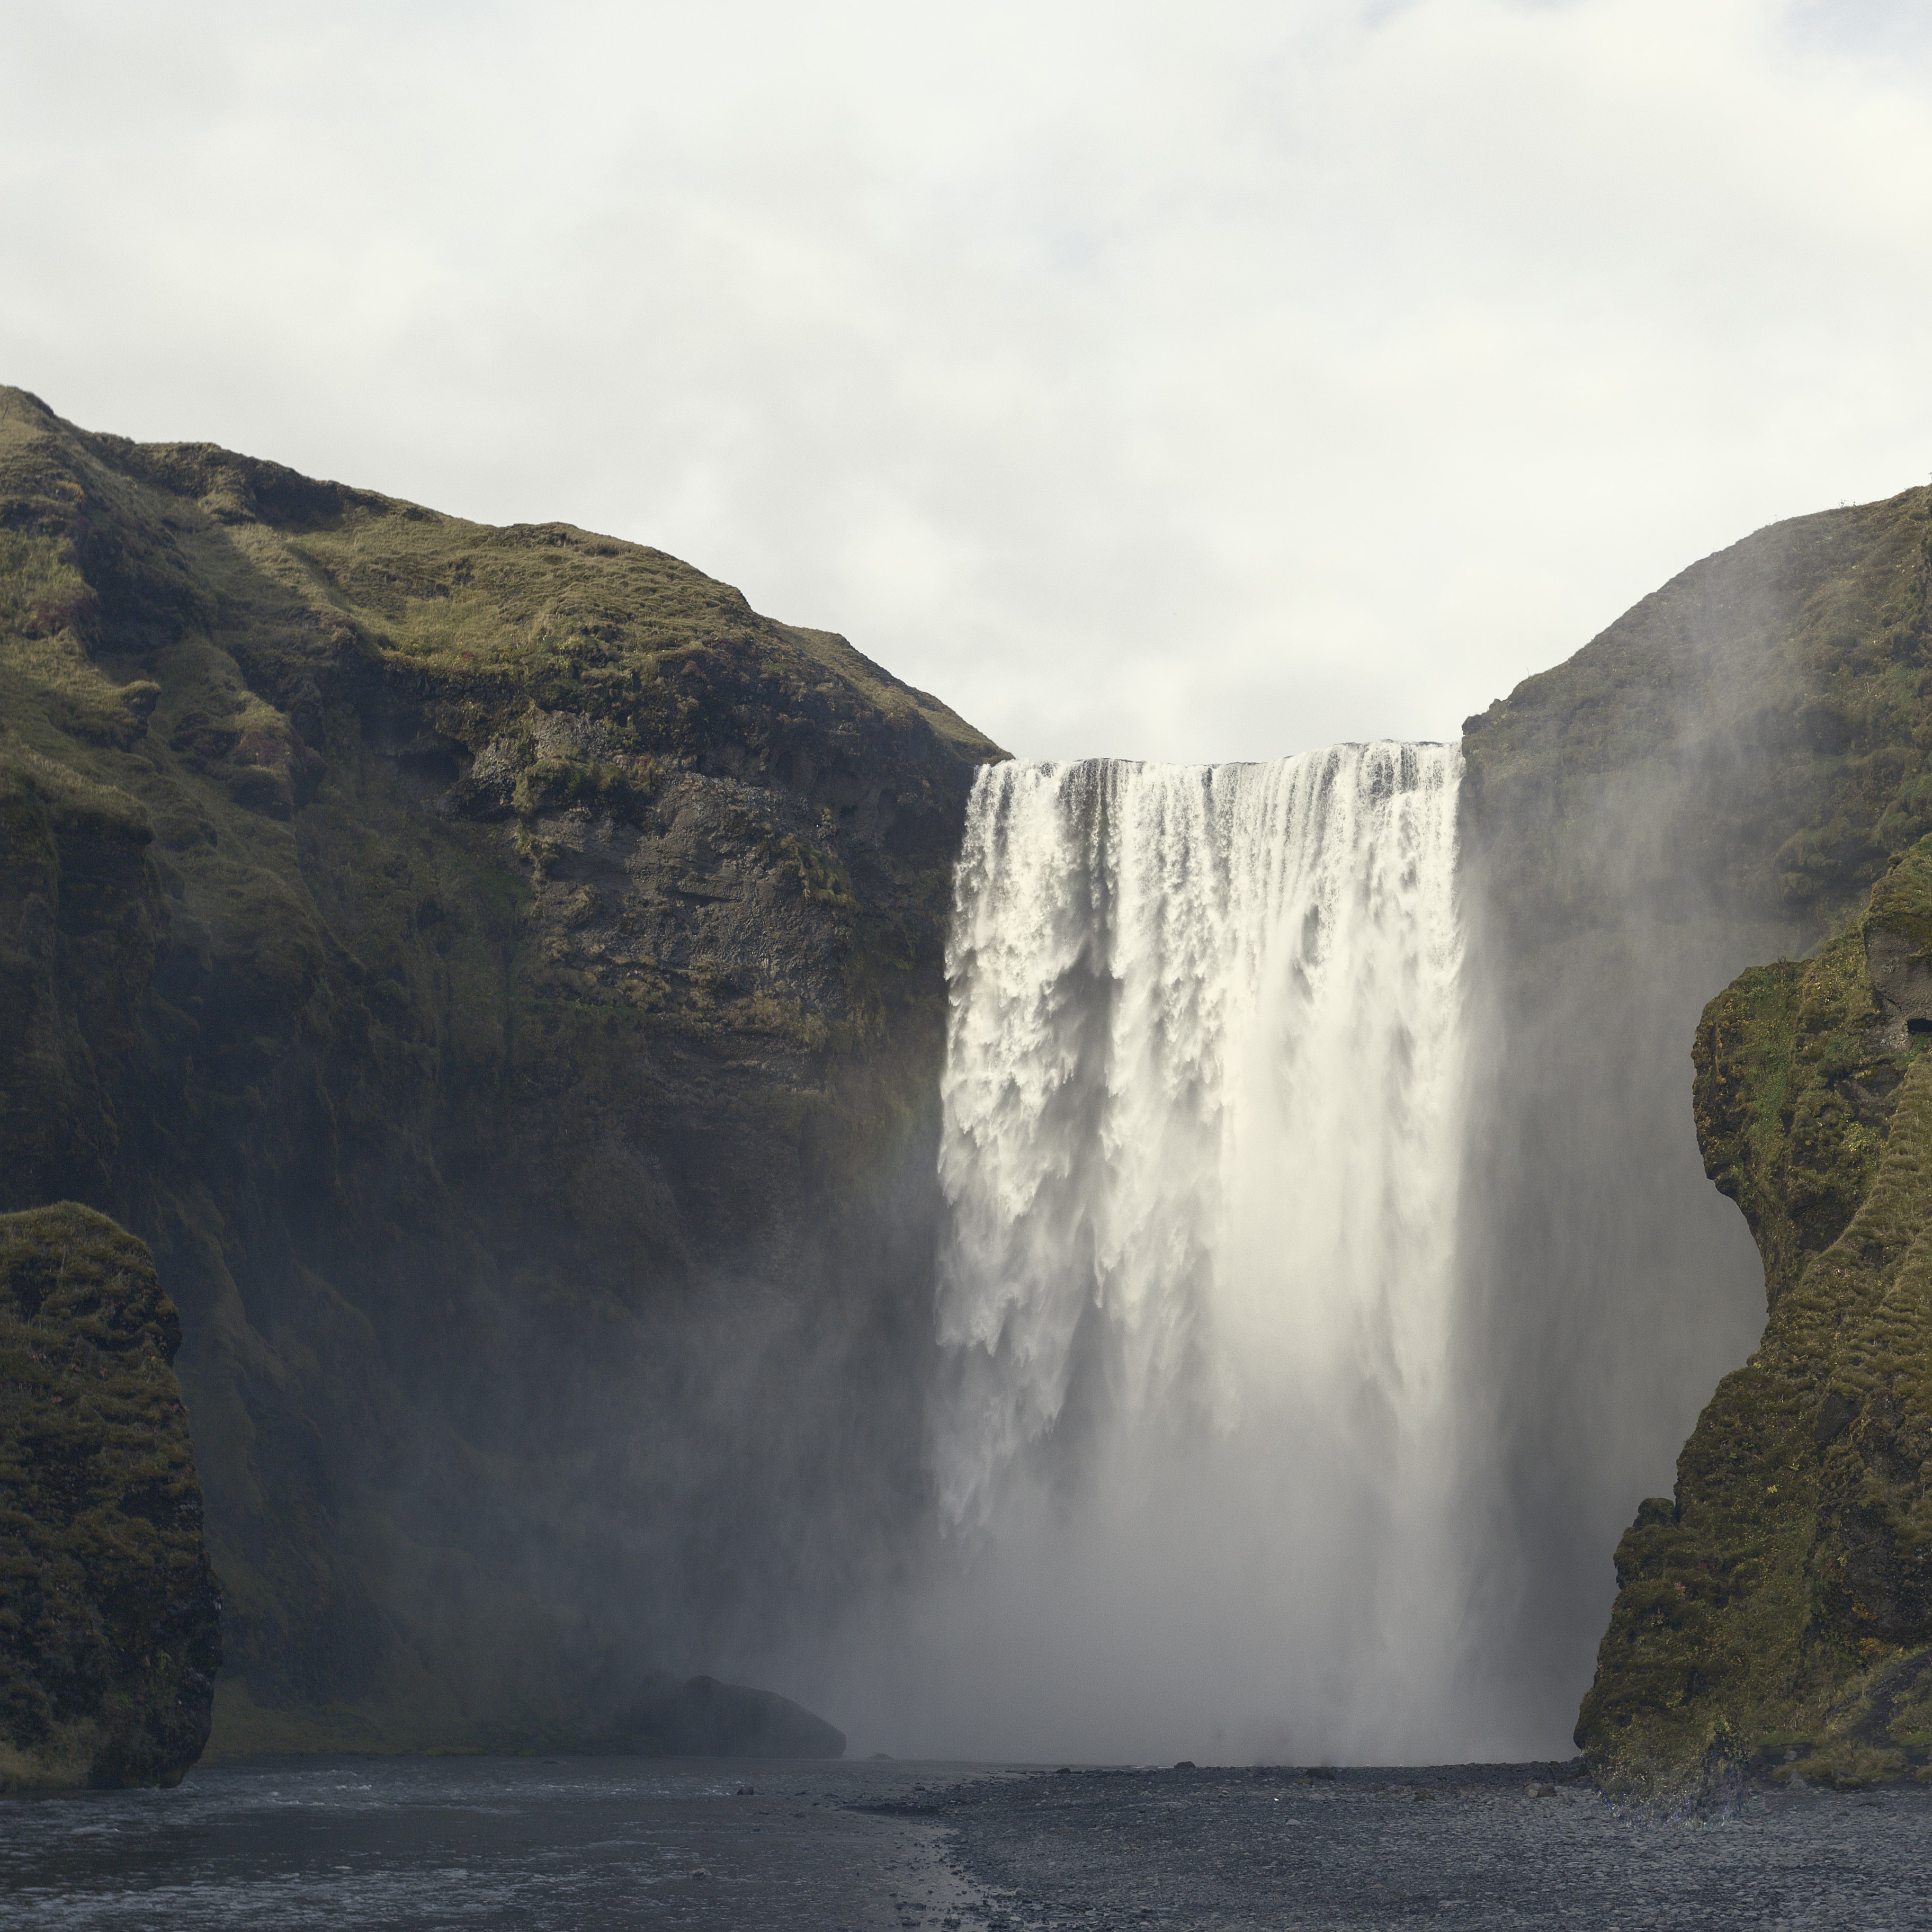 A large waterfall streaming from a rocky mountain in Iceland